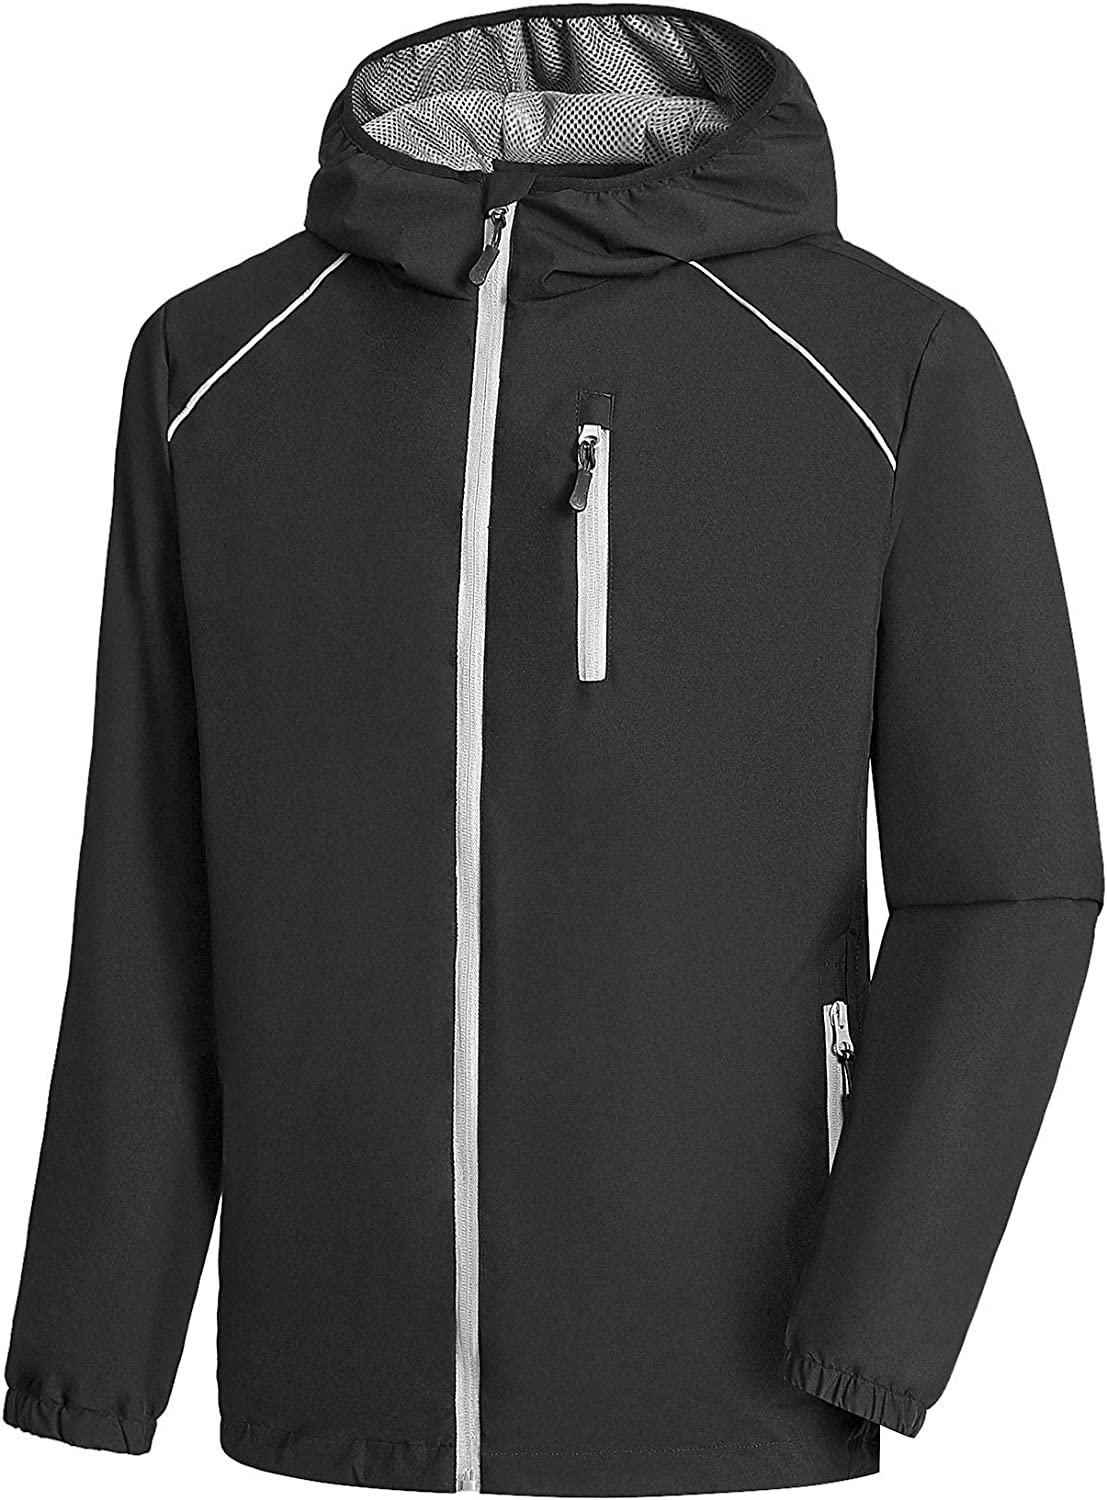 Men's Waterproof Cycling Bike Jacket Oklahoma City Mall Jac Rain with Running Hood Safety and trust